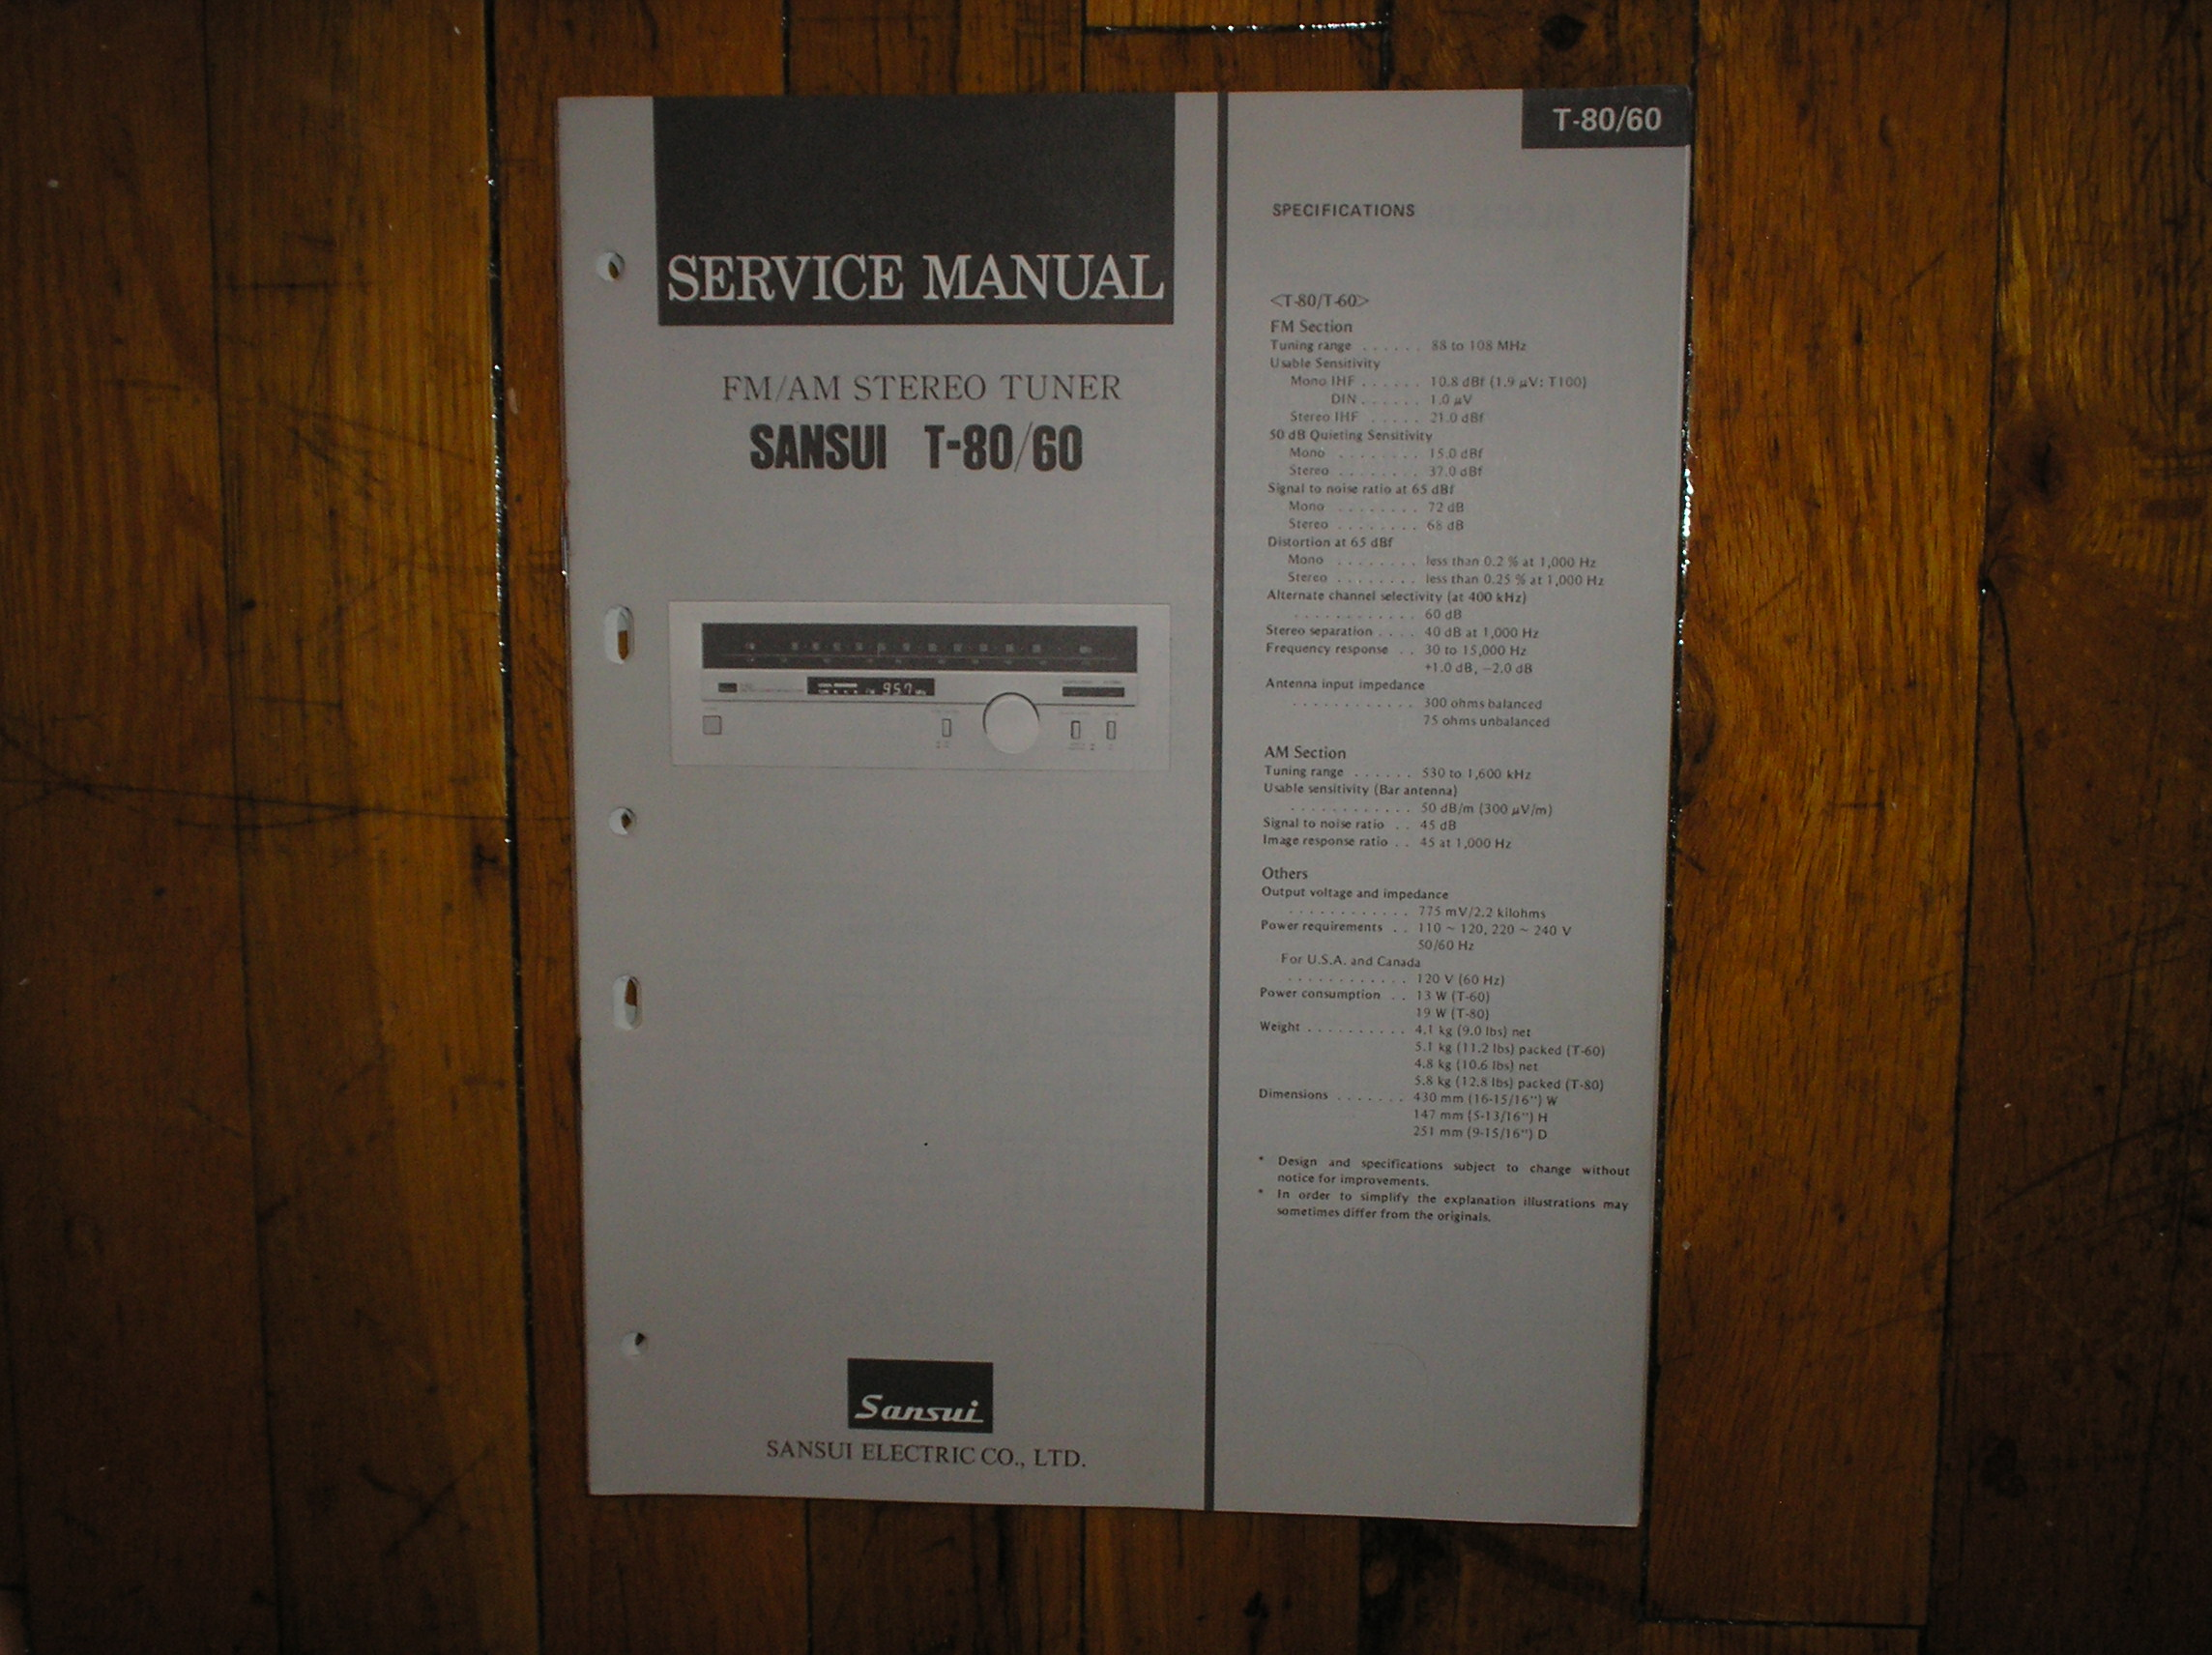 T-60 T-80 Tuner Service Manual